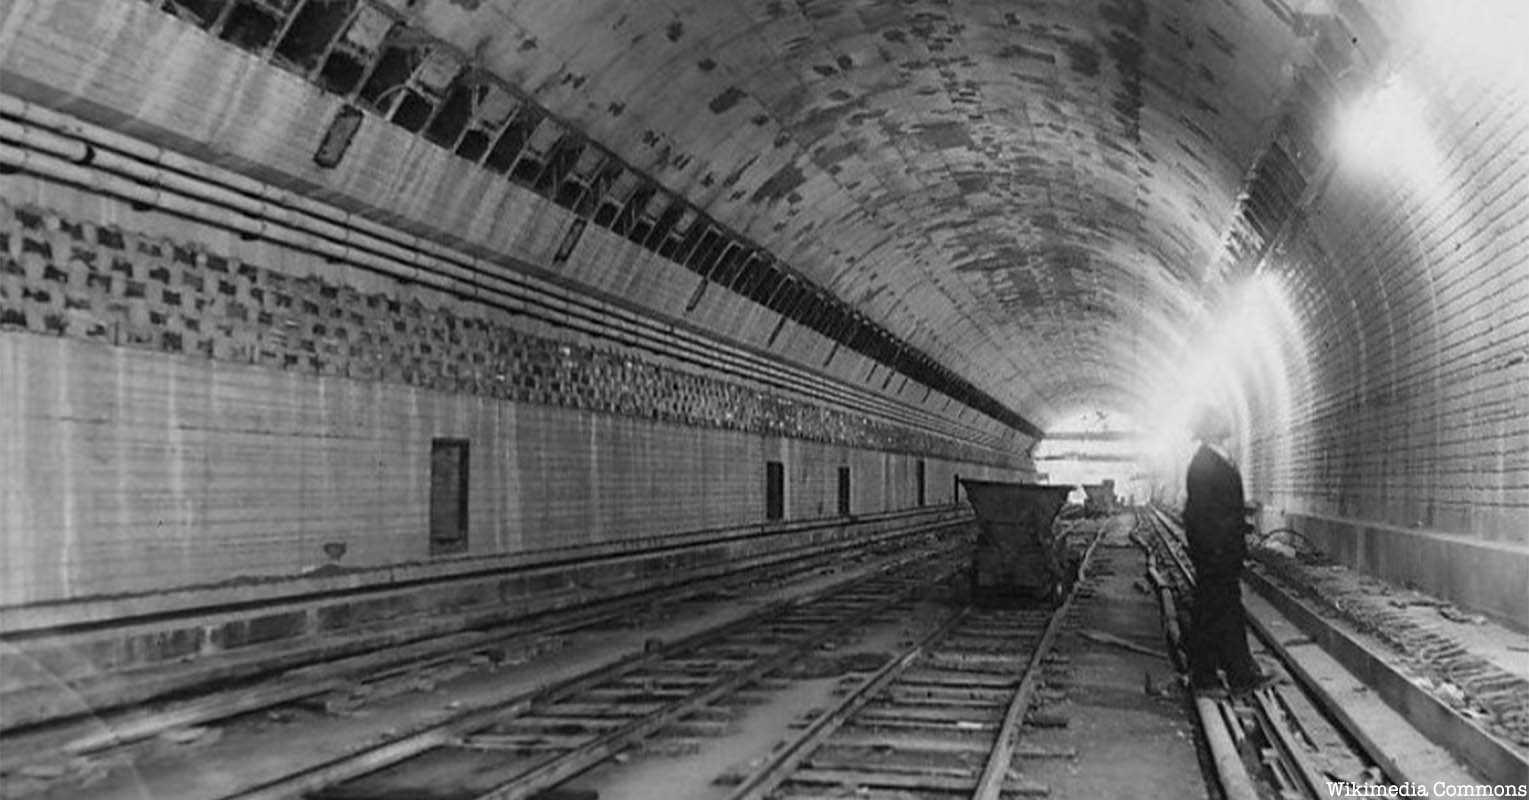 A black and white photograph of the Lincoln Tunnel.